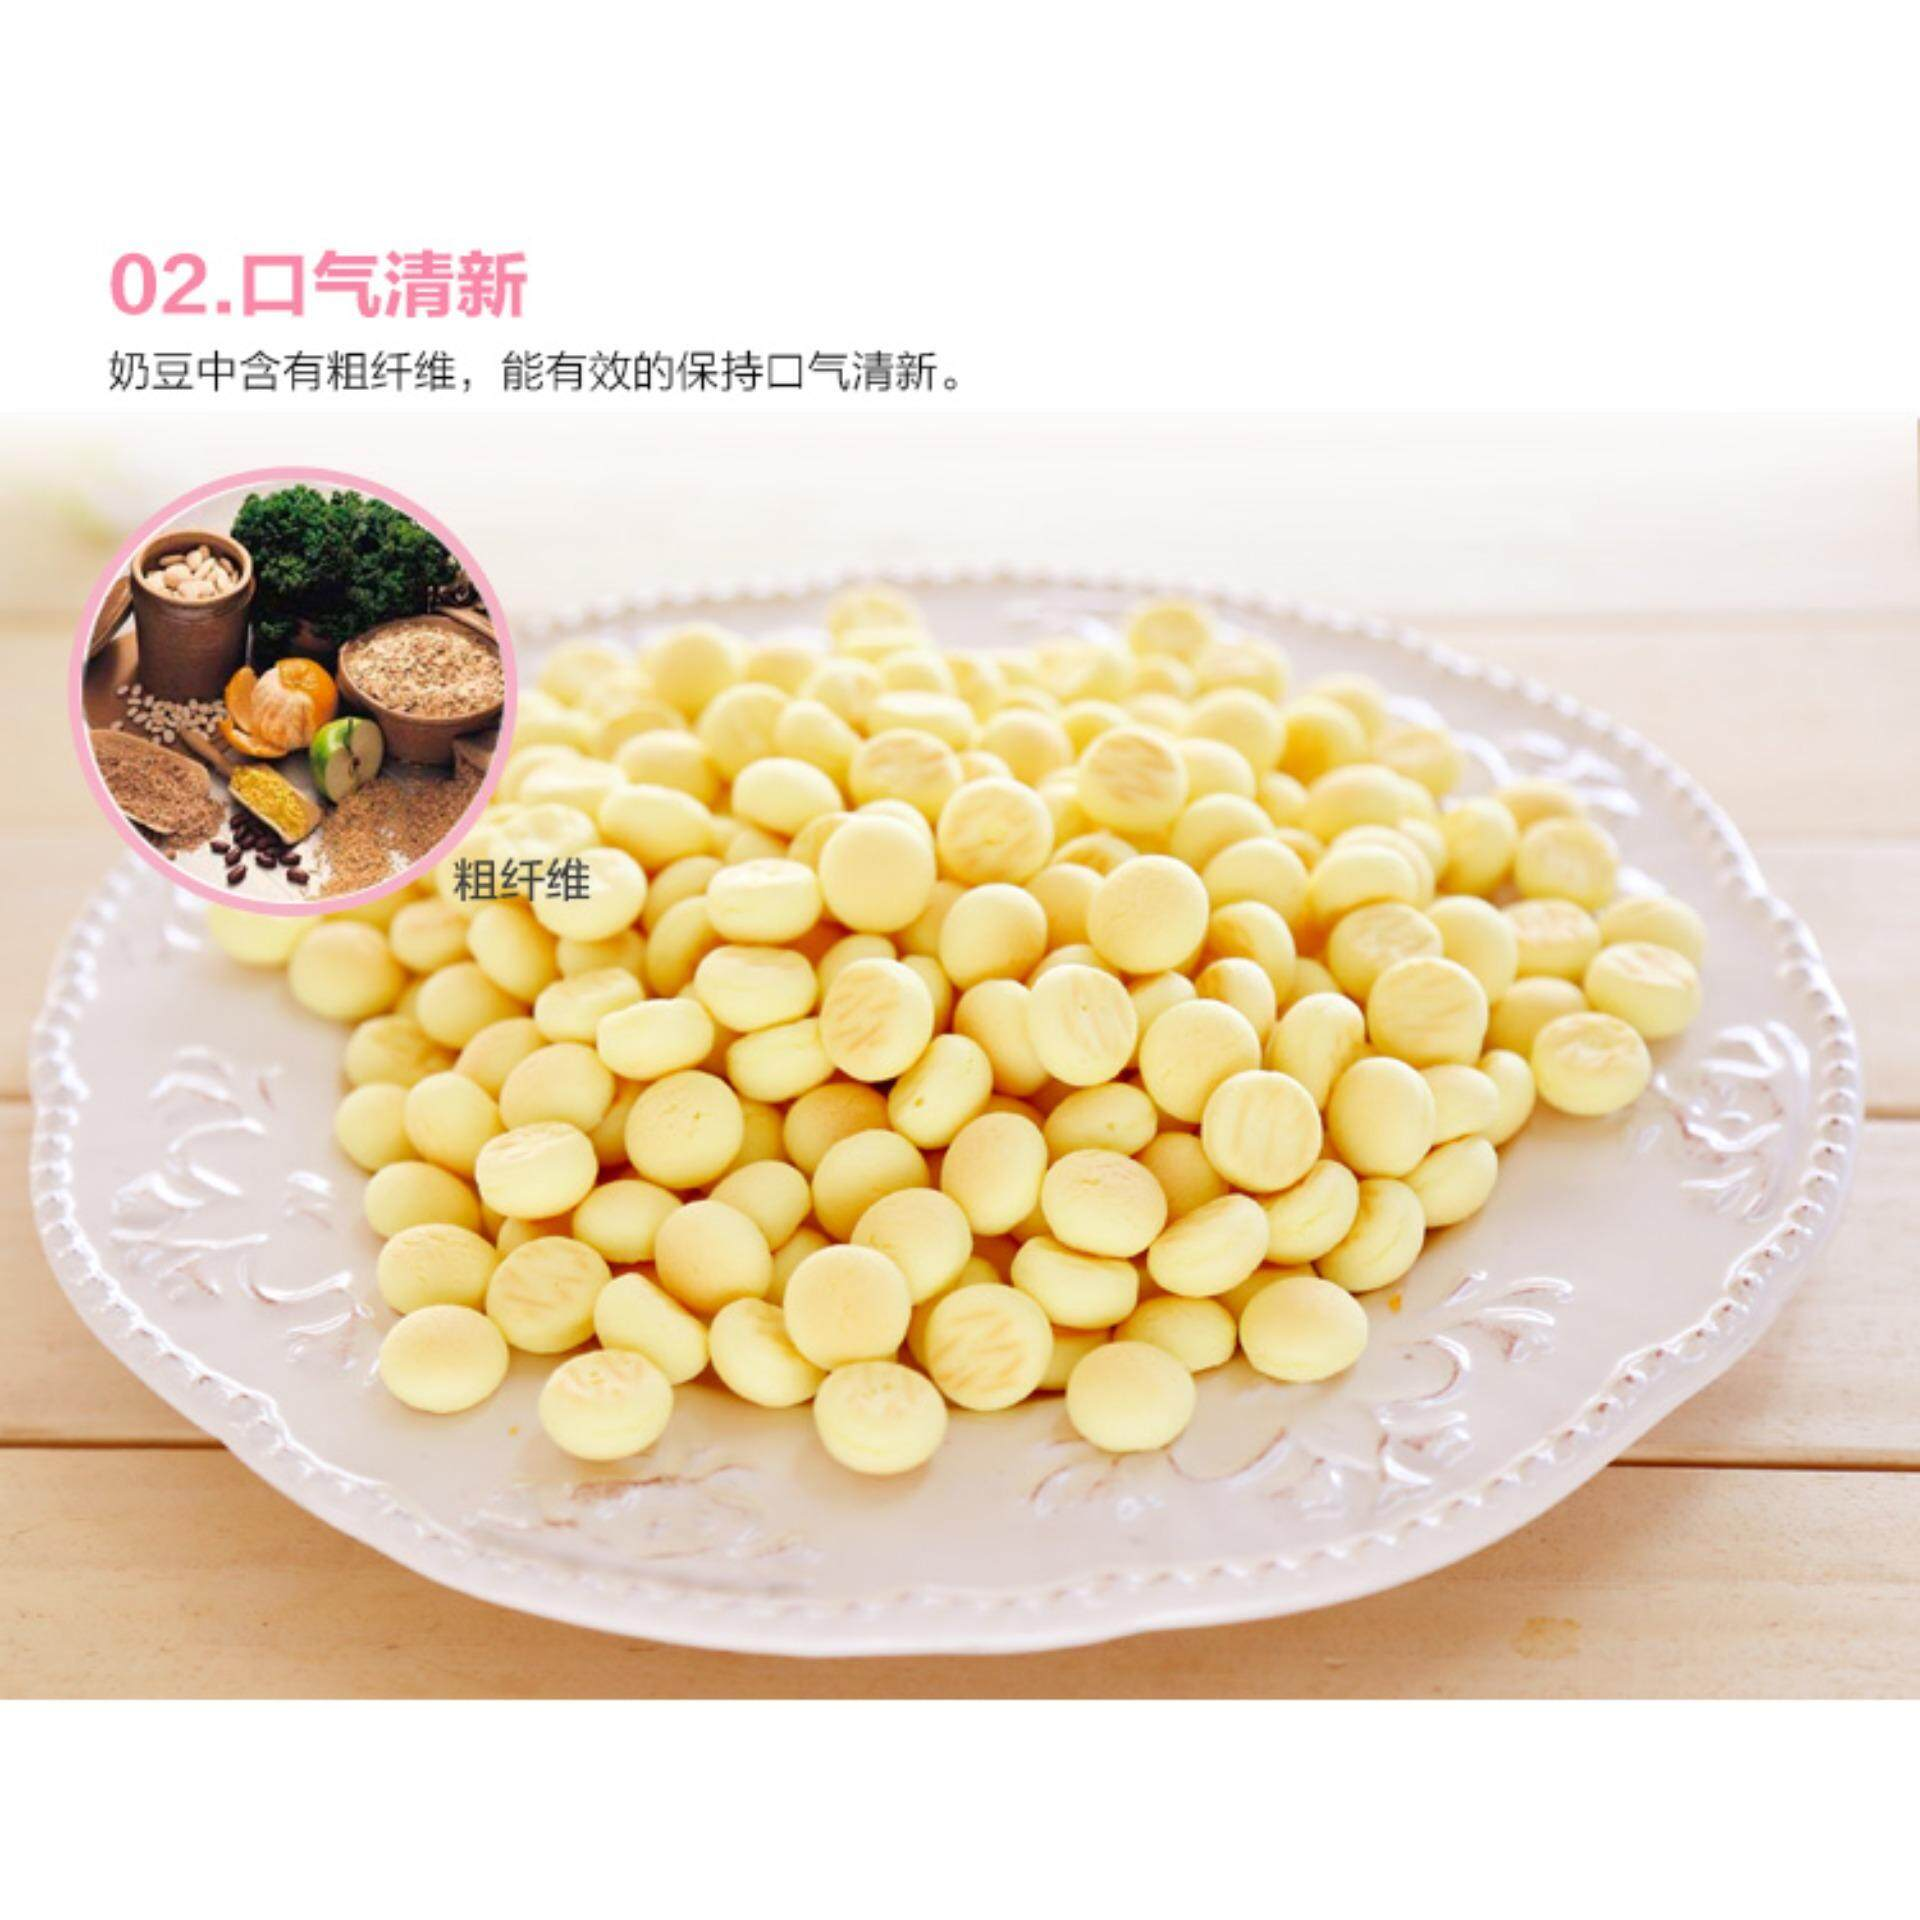 (2 in 1)TAROKUN LITTLE BUN 248G (CHEESE) + TAROKUN LITTLE BUN 400G